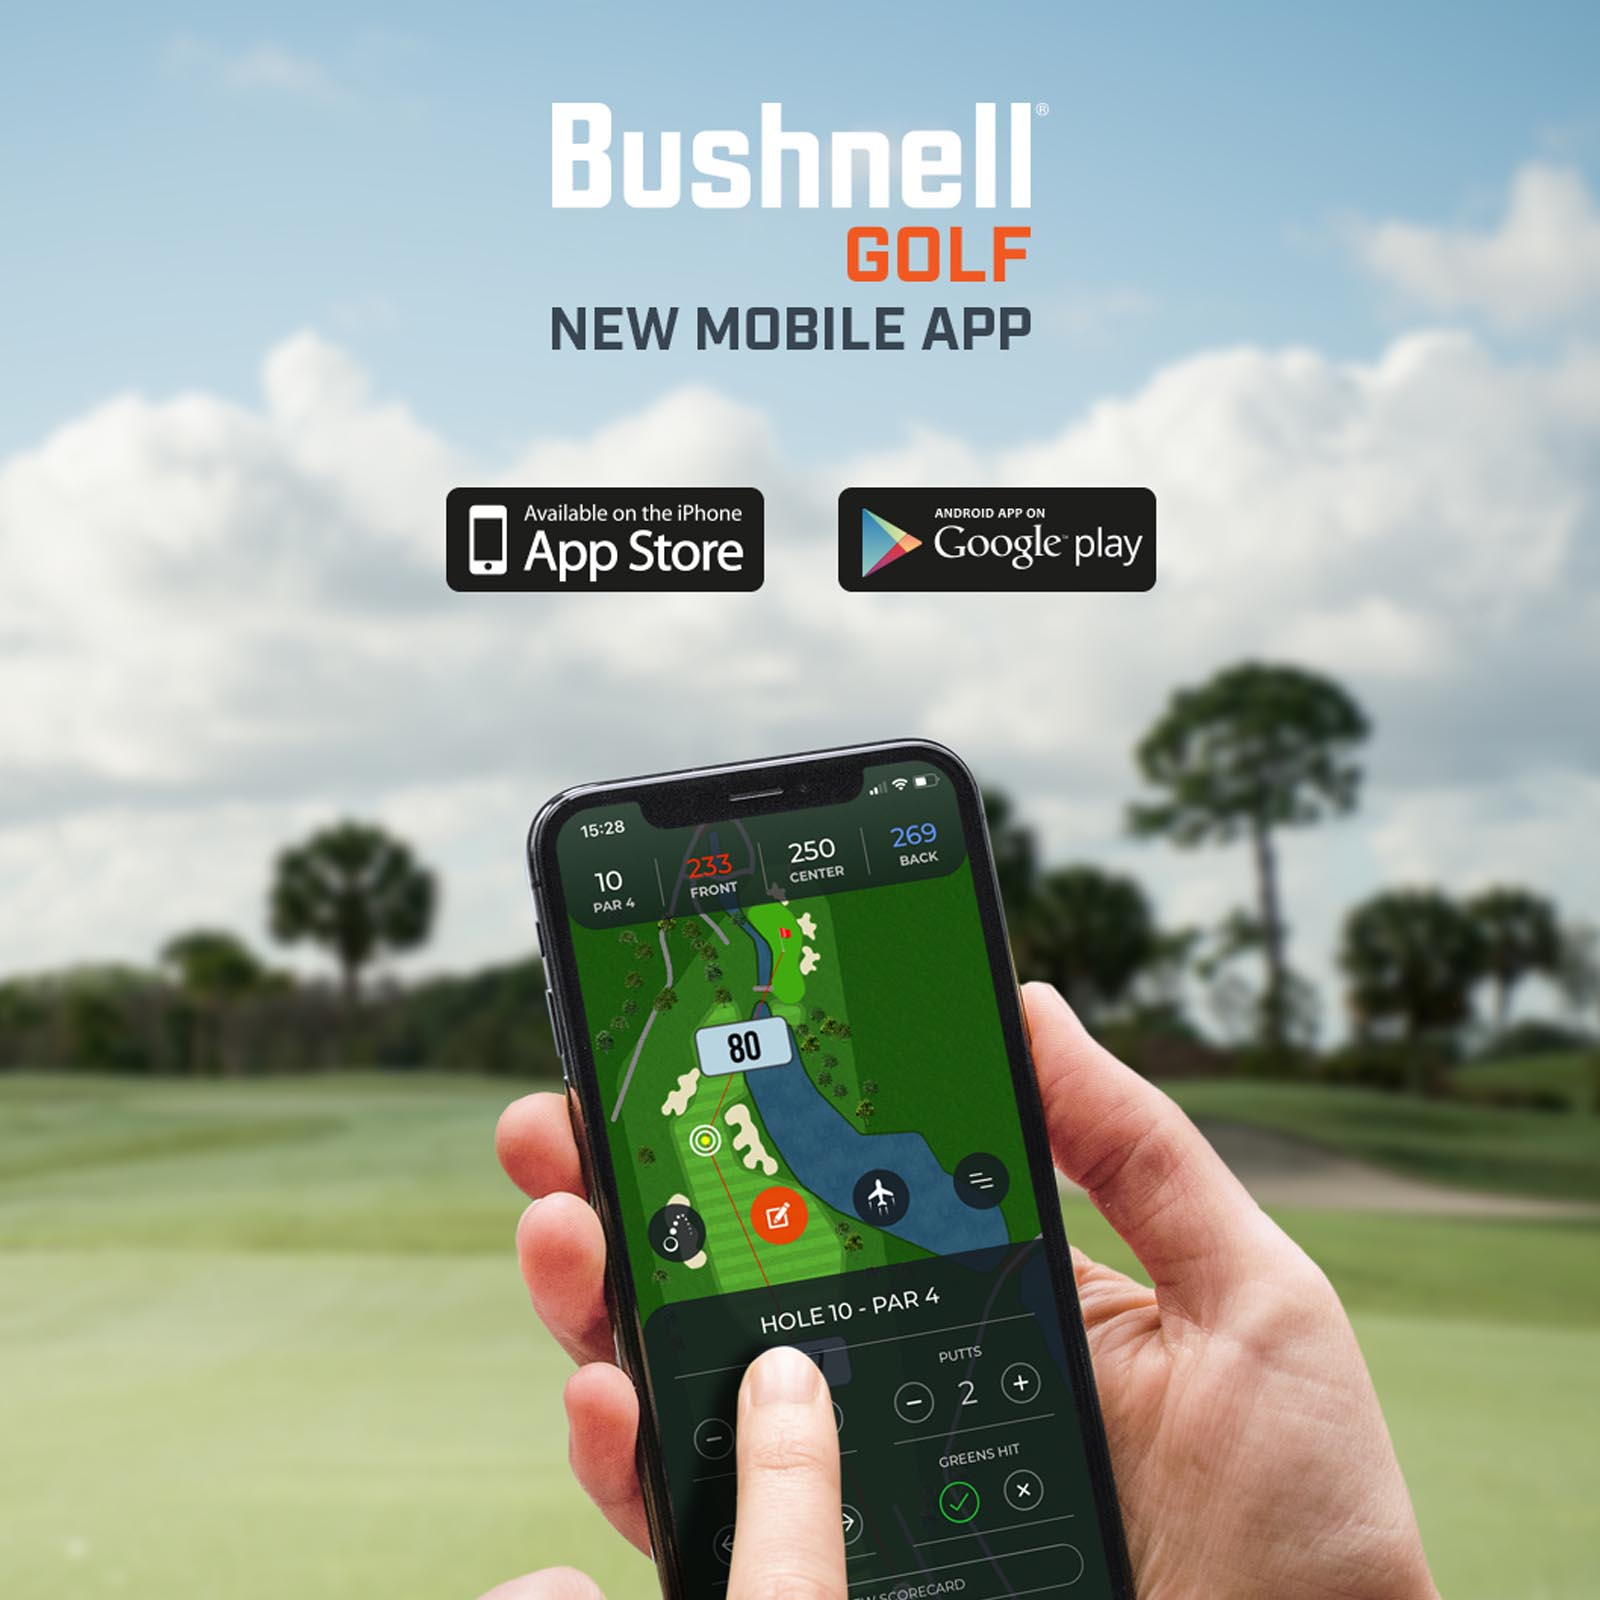 Bushnell Mobile Golf App